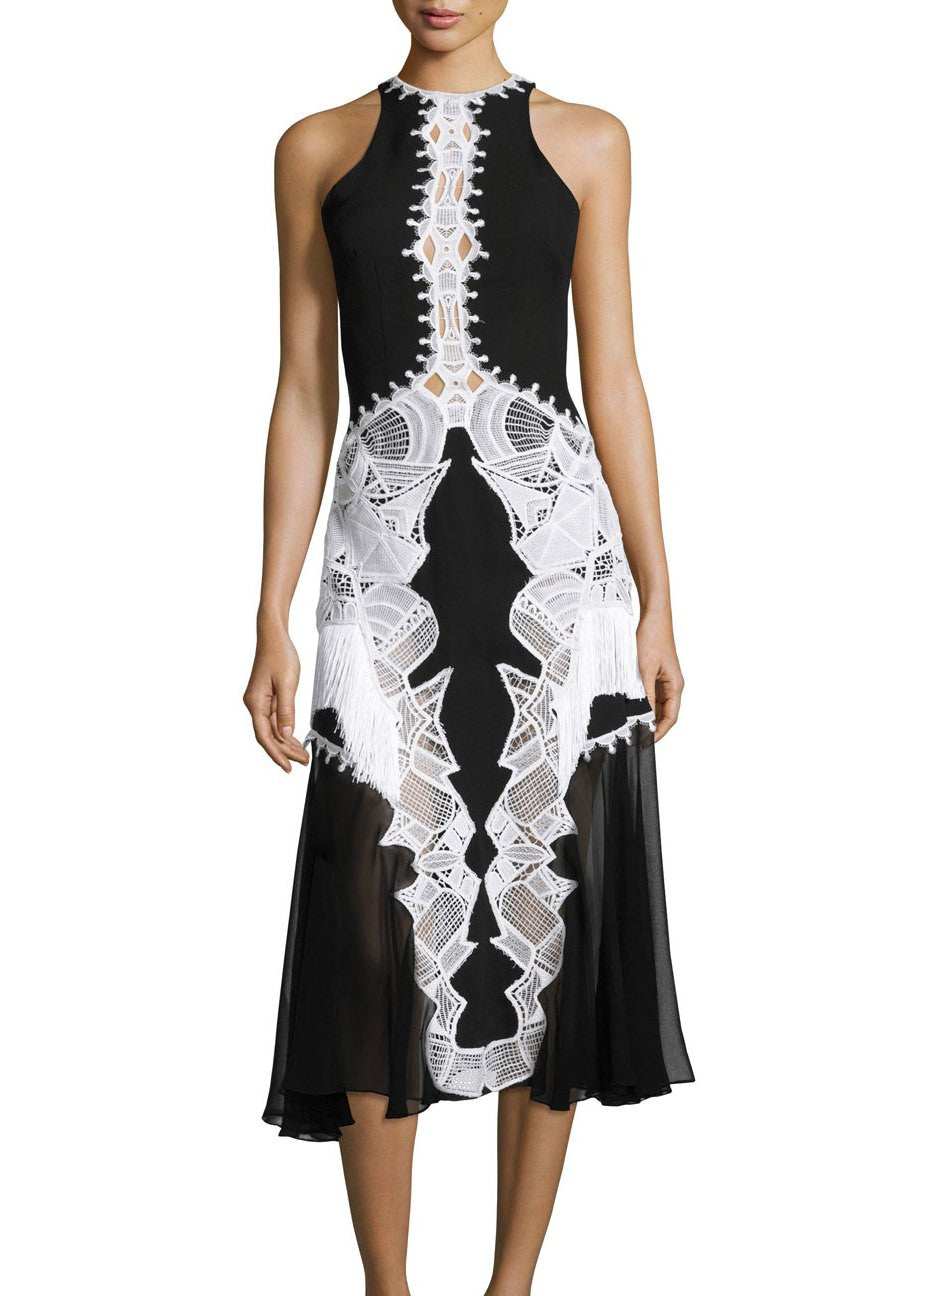 Jonathan Simkhai lace applique contoured dress black white